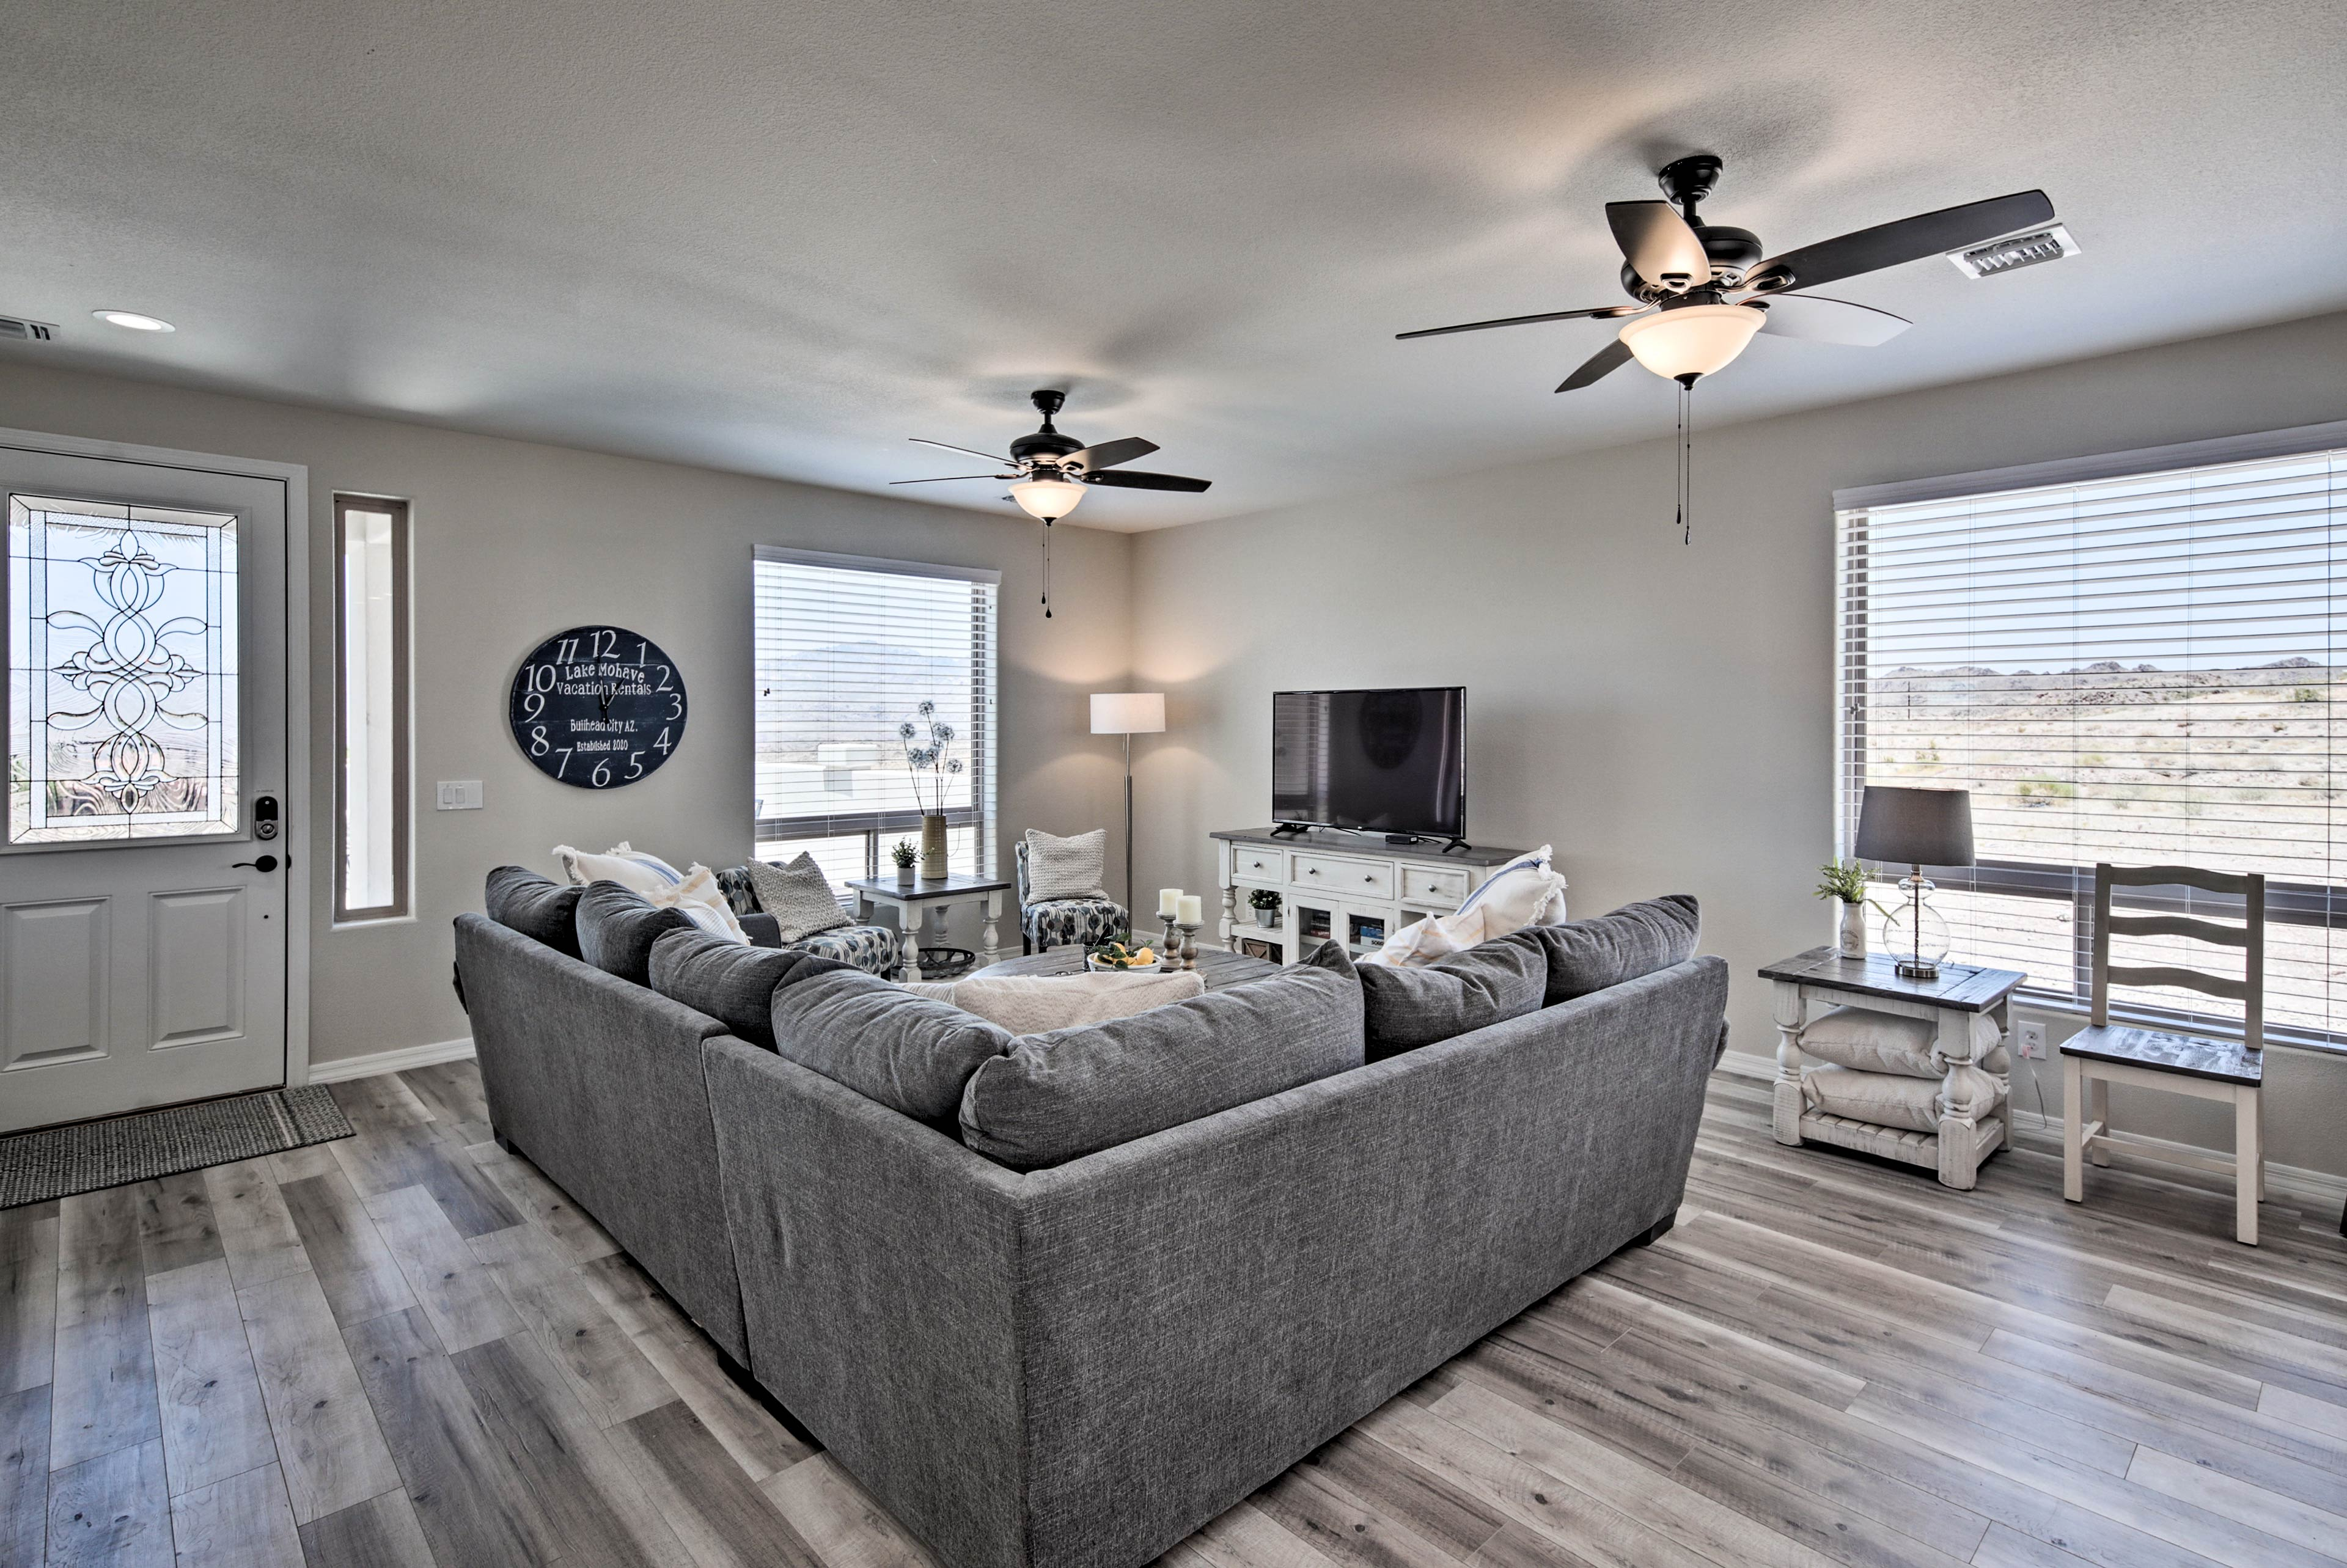 The interior living space features modern-style furnishings and a Smart TV.